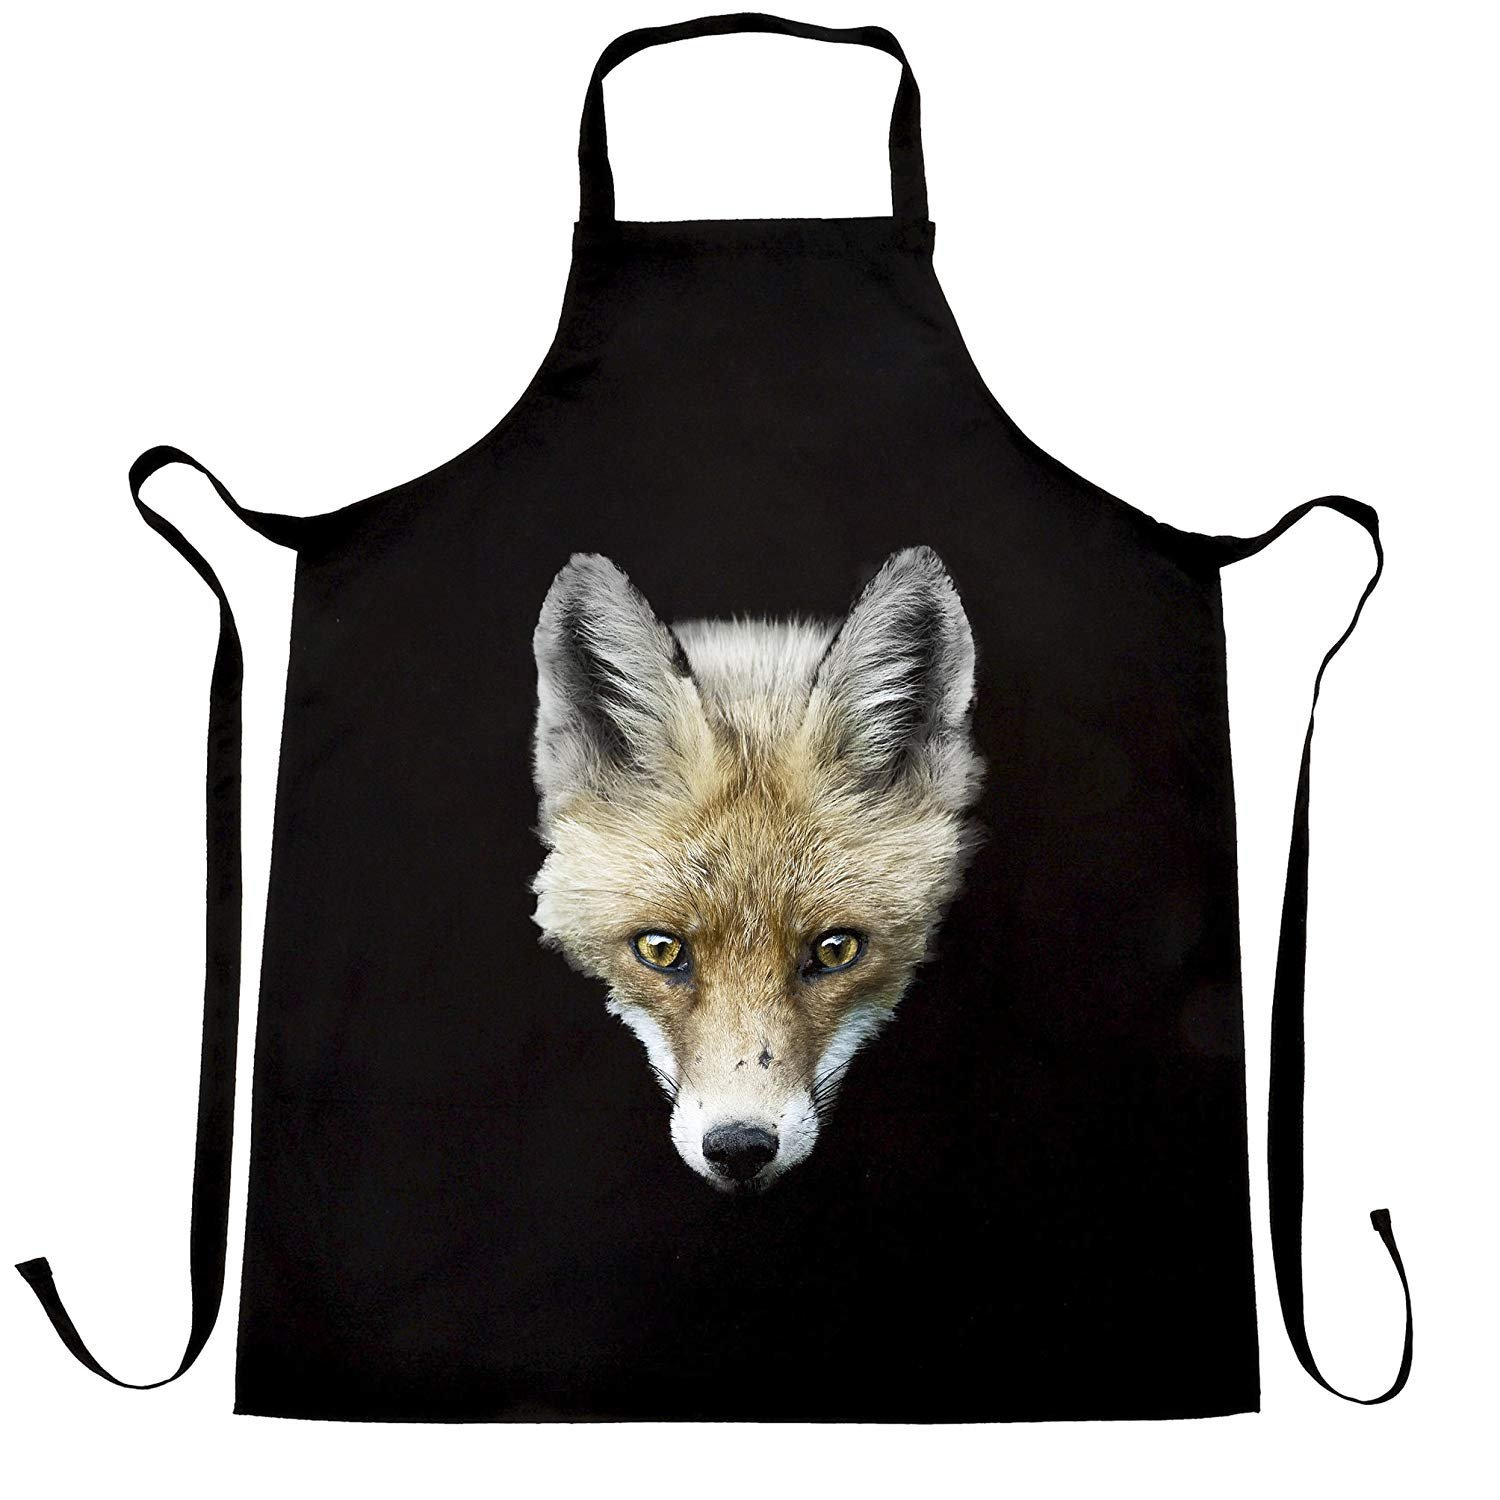 Fox Head Photograph Image Sly Sneaky Wildlife Logo Animal Wild Cute Powerful Inspirational Printed Design College Club Friend Family Apron Kitchen BBQ Cook Cool Birthday Gift Present